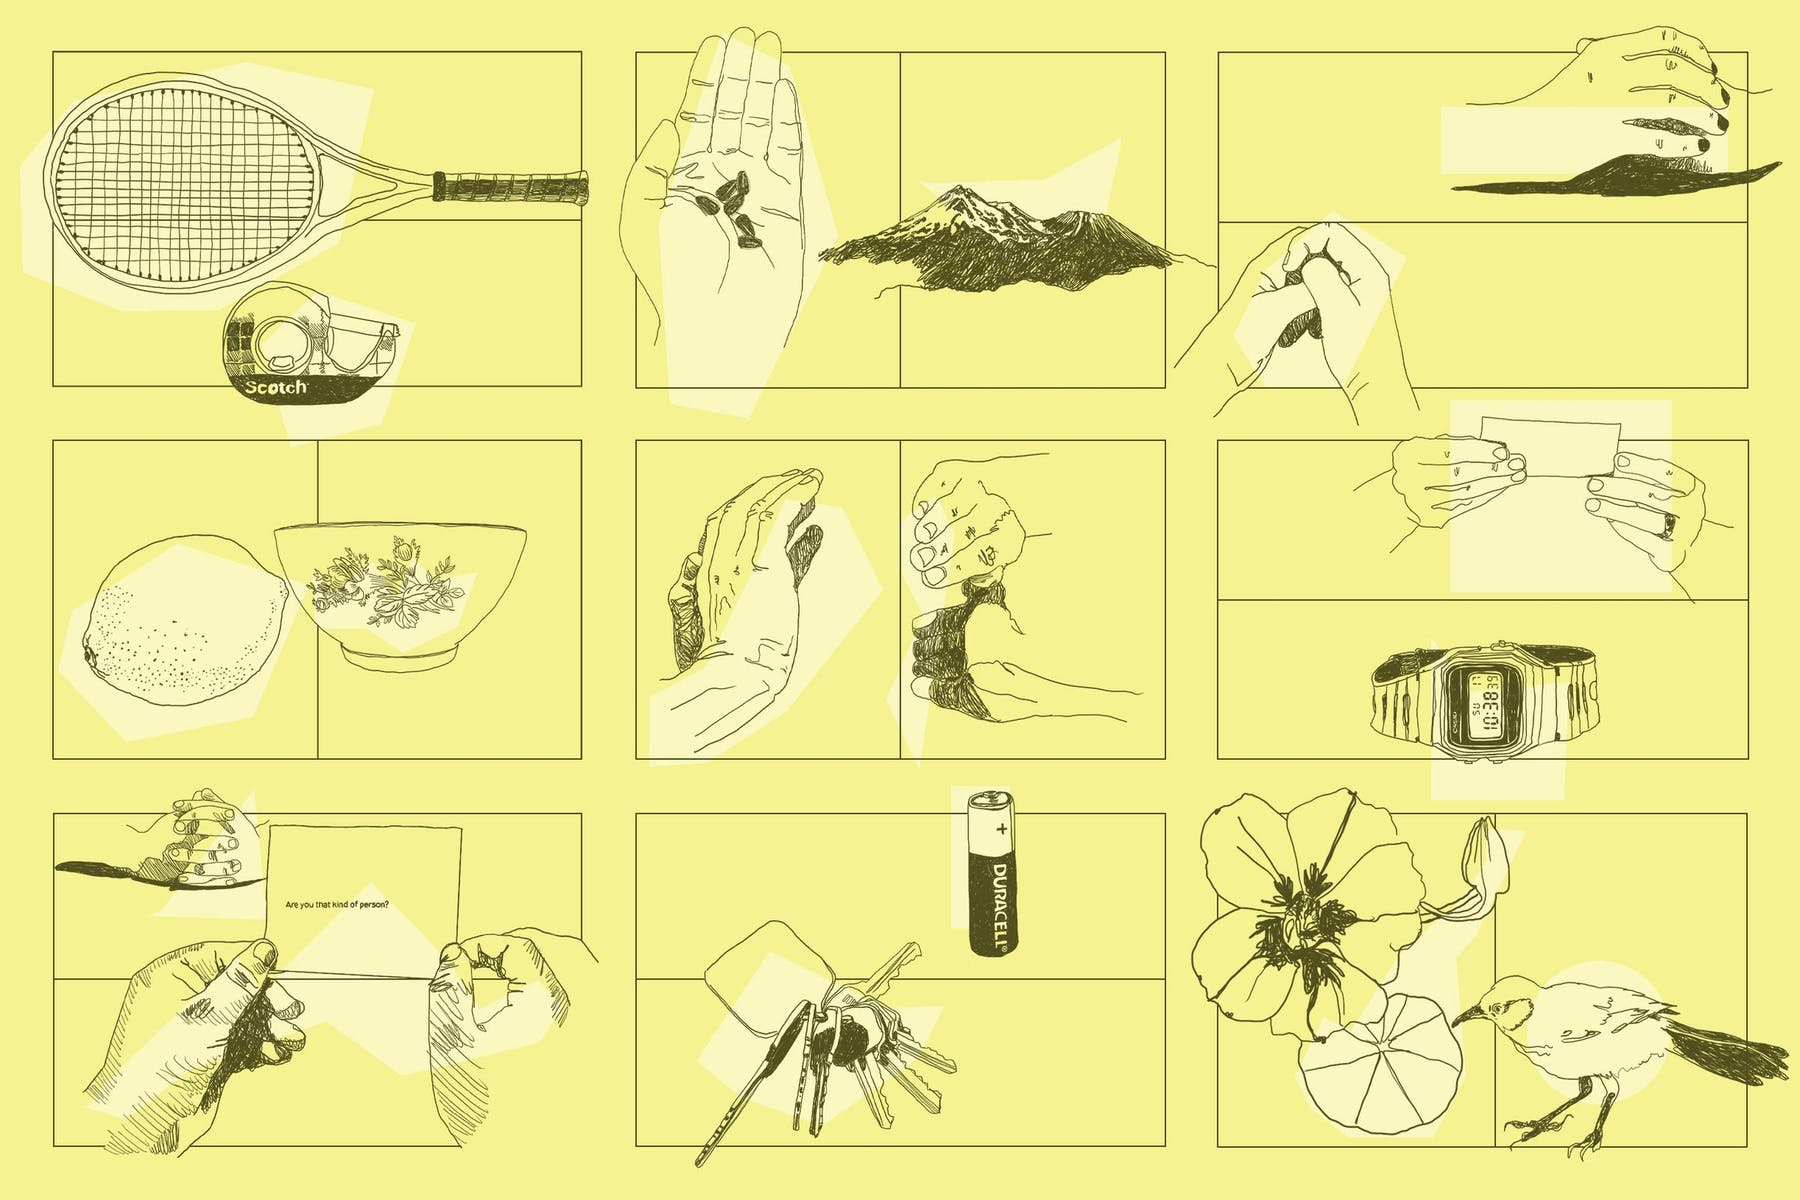 Collage of drawings on yellow background of various objects and hands